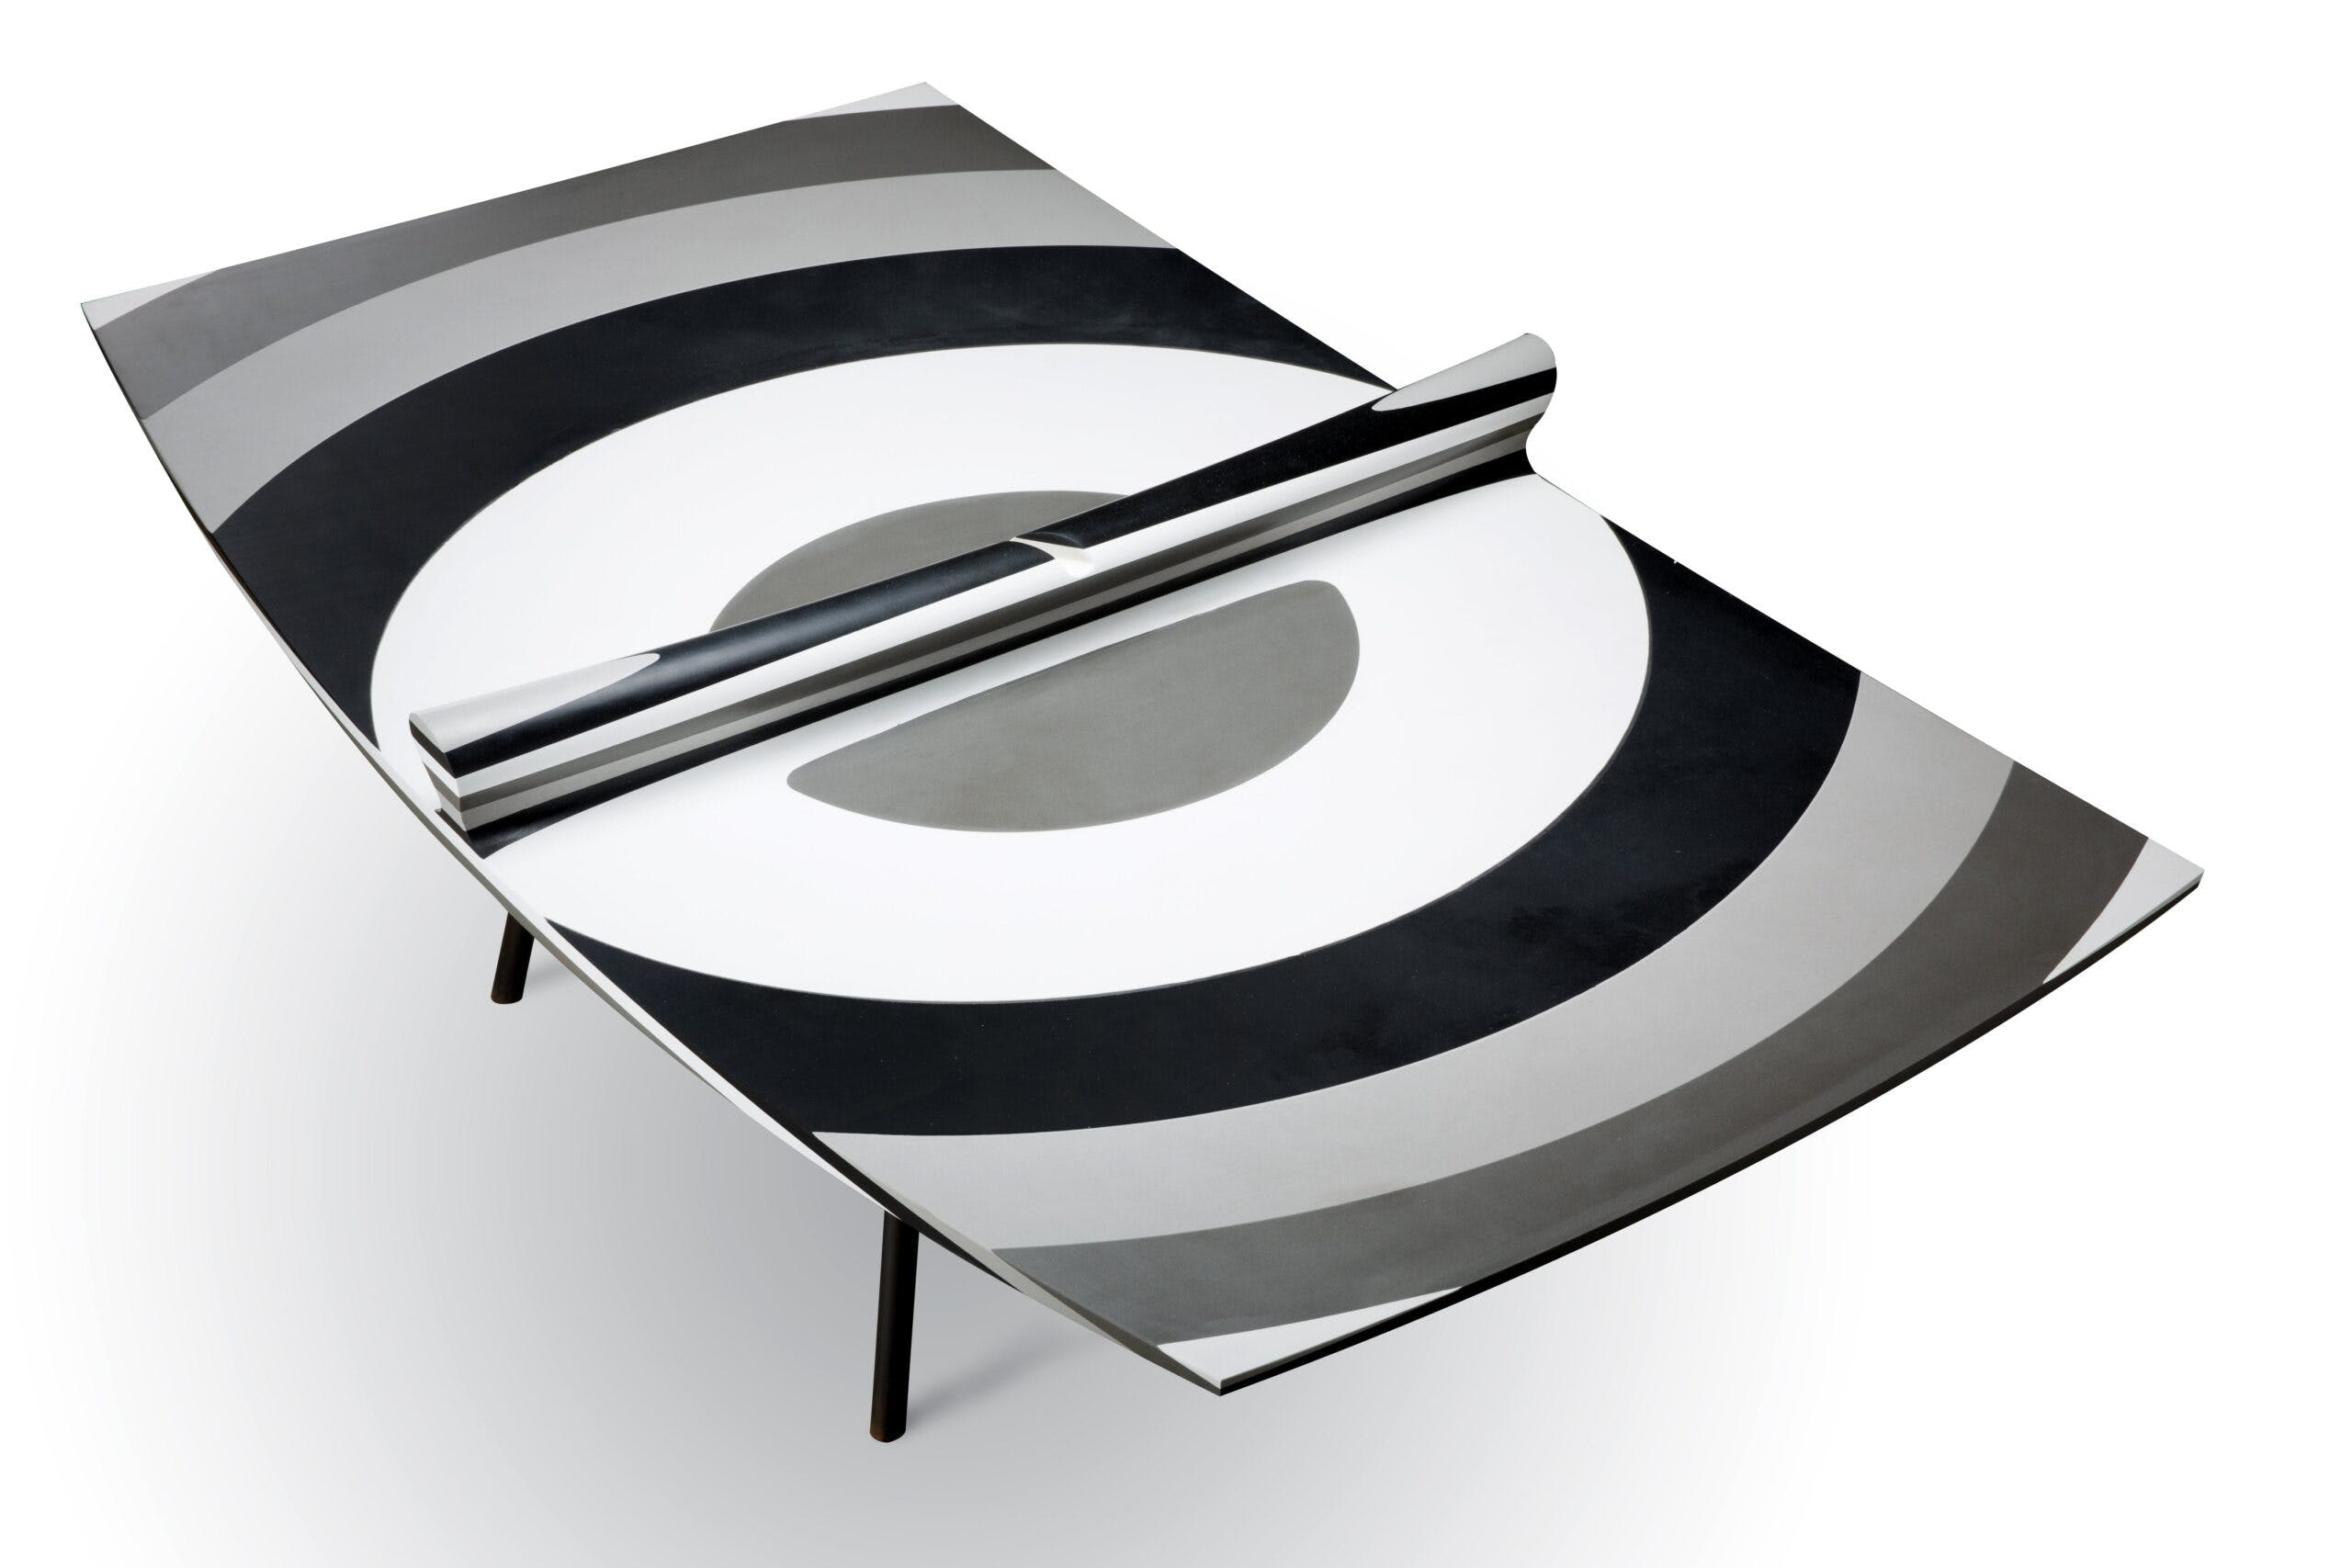 10 Layers Silestone ping pong table by Ron Arad